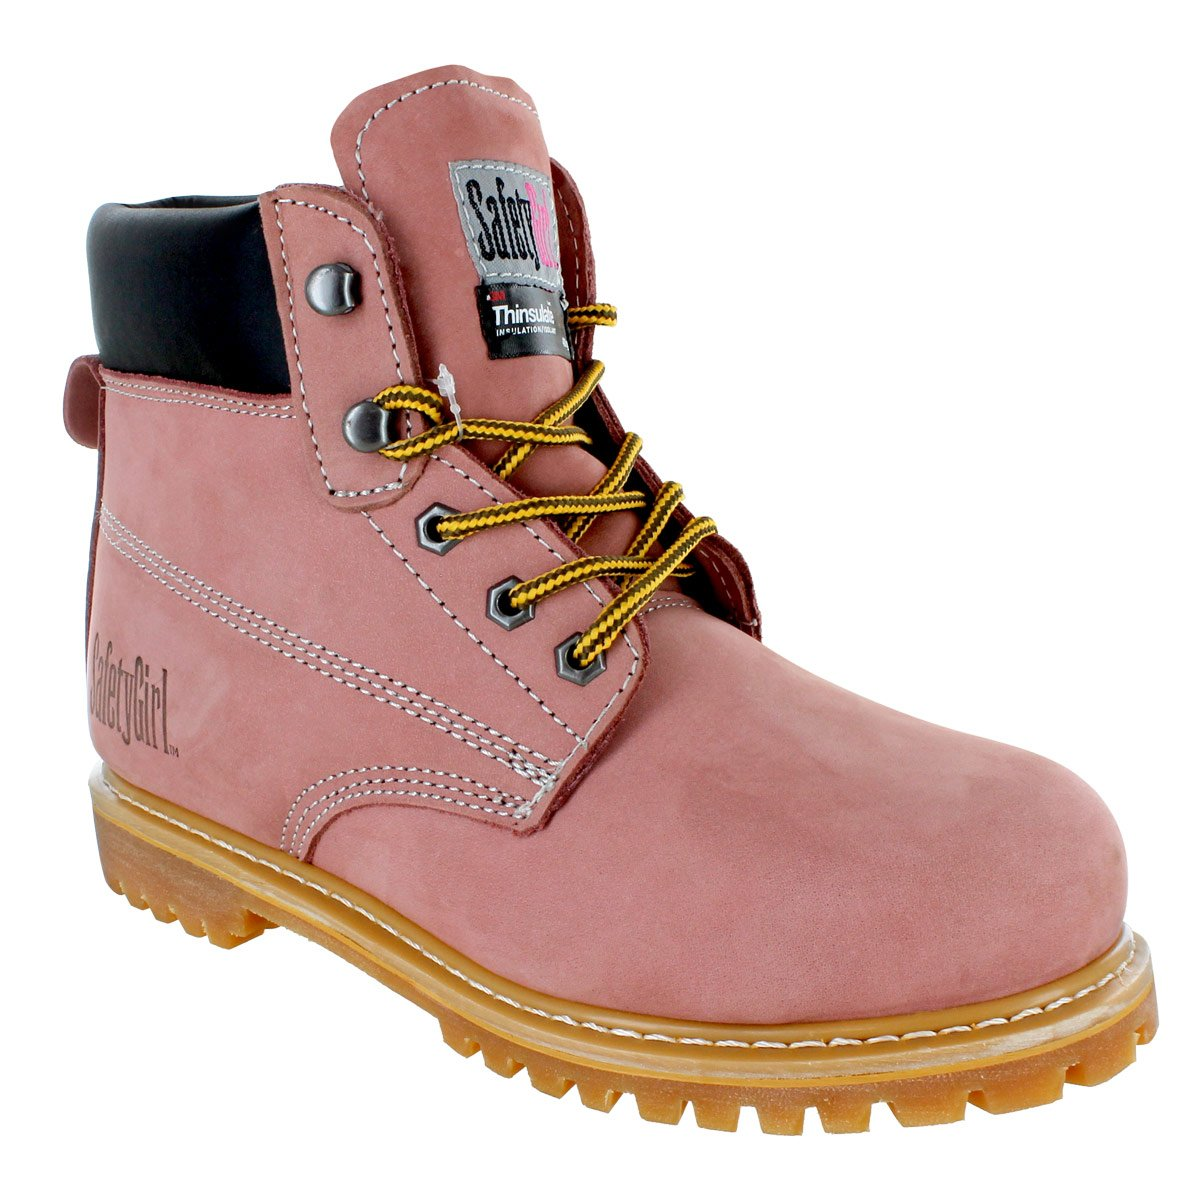 Safety Girl GS005-LTPink-11M Safety Girl II Insulated Work Boot - Steel Toe 11M, English, Capacity, Volume, Leather, 11M, Pink () by Safety Girl (Image #1)